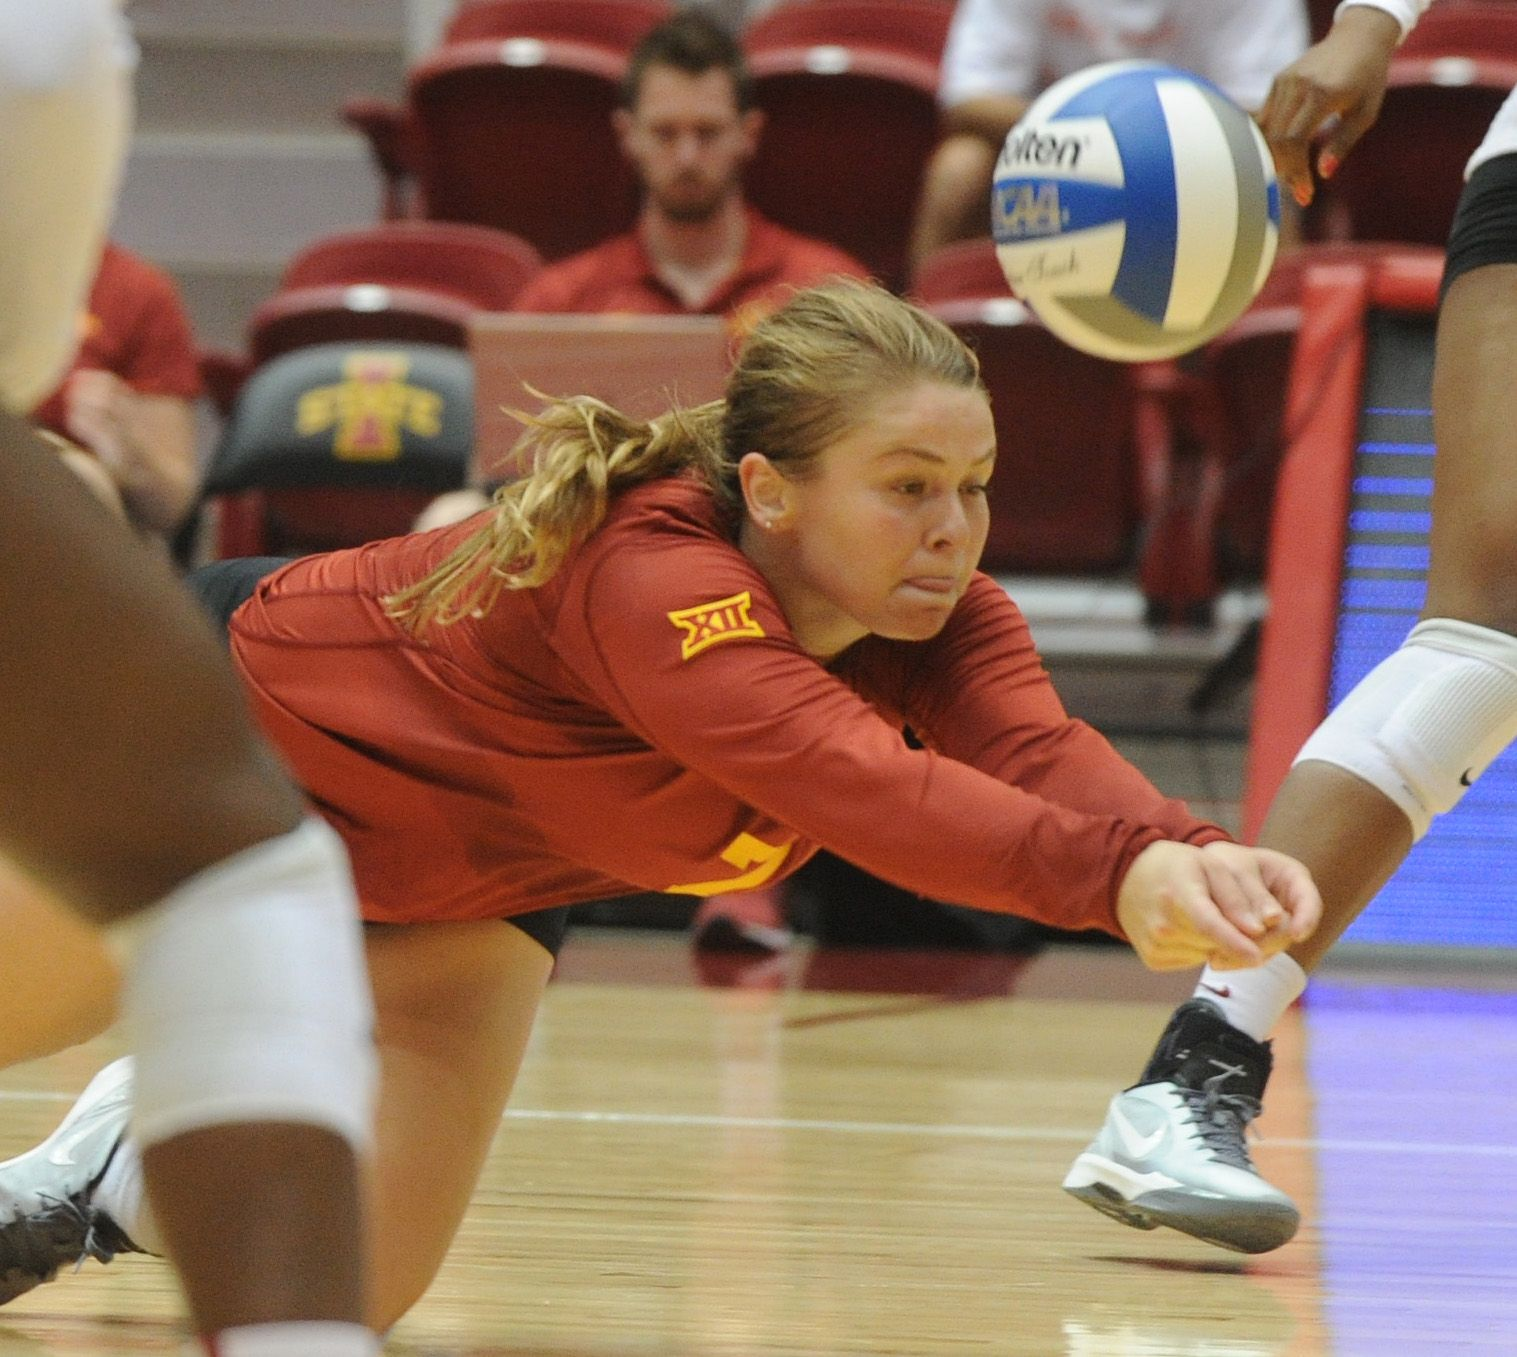 Iowa State Libero Caitlin Nolan Dives For The Volleyball During The Cardinal Vs Gold Scrimmage On Saturday Photo By Nirma Iowa State Cyclones Iowa State Iowa